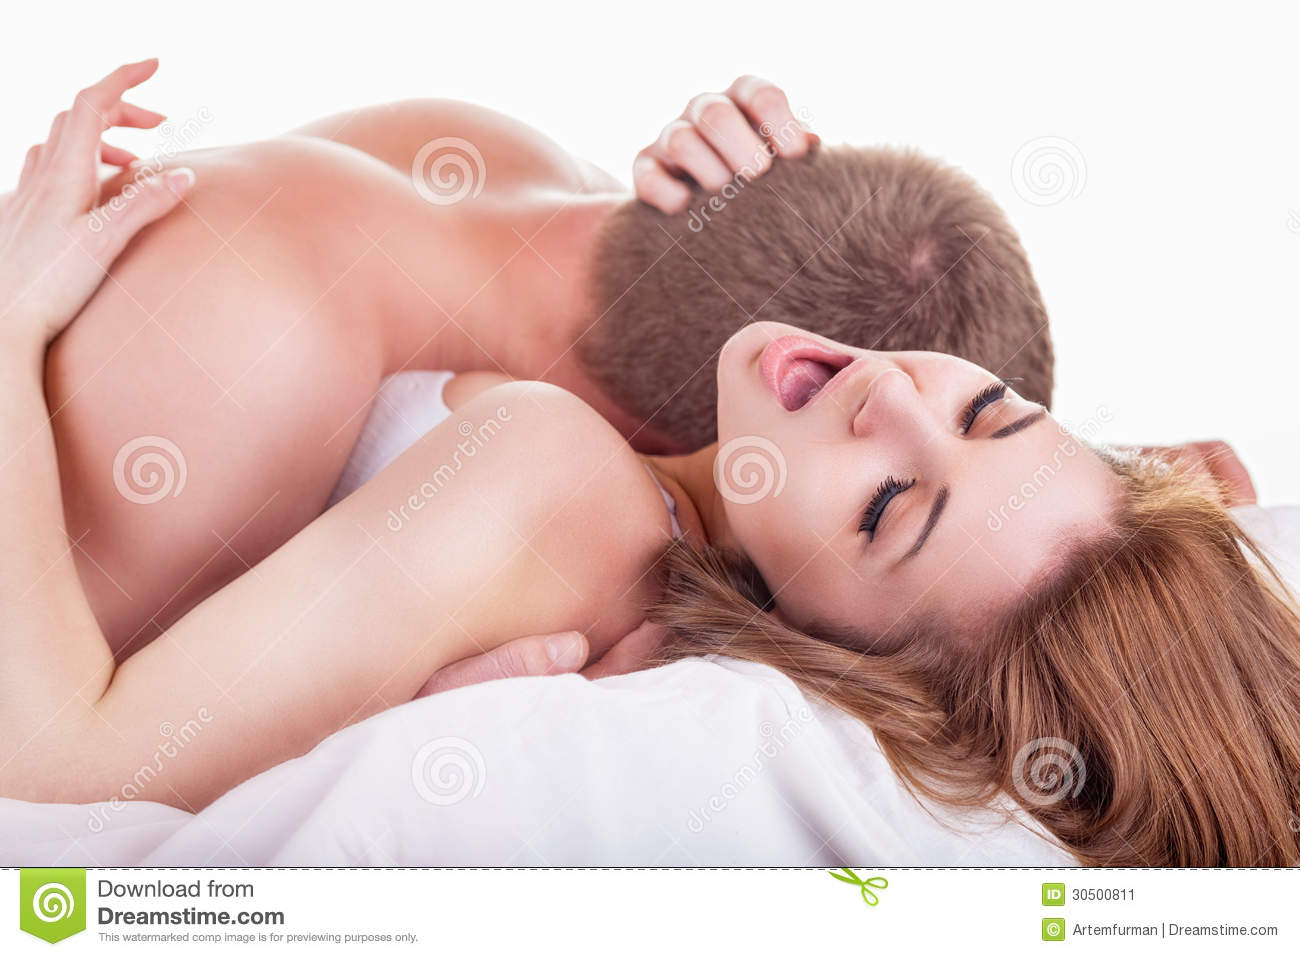 Young Beautiful Amorous Couple Making Love In Bed On White Background